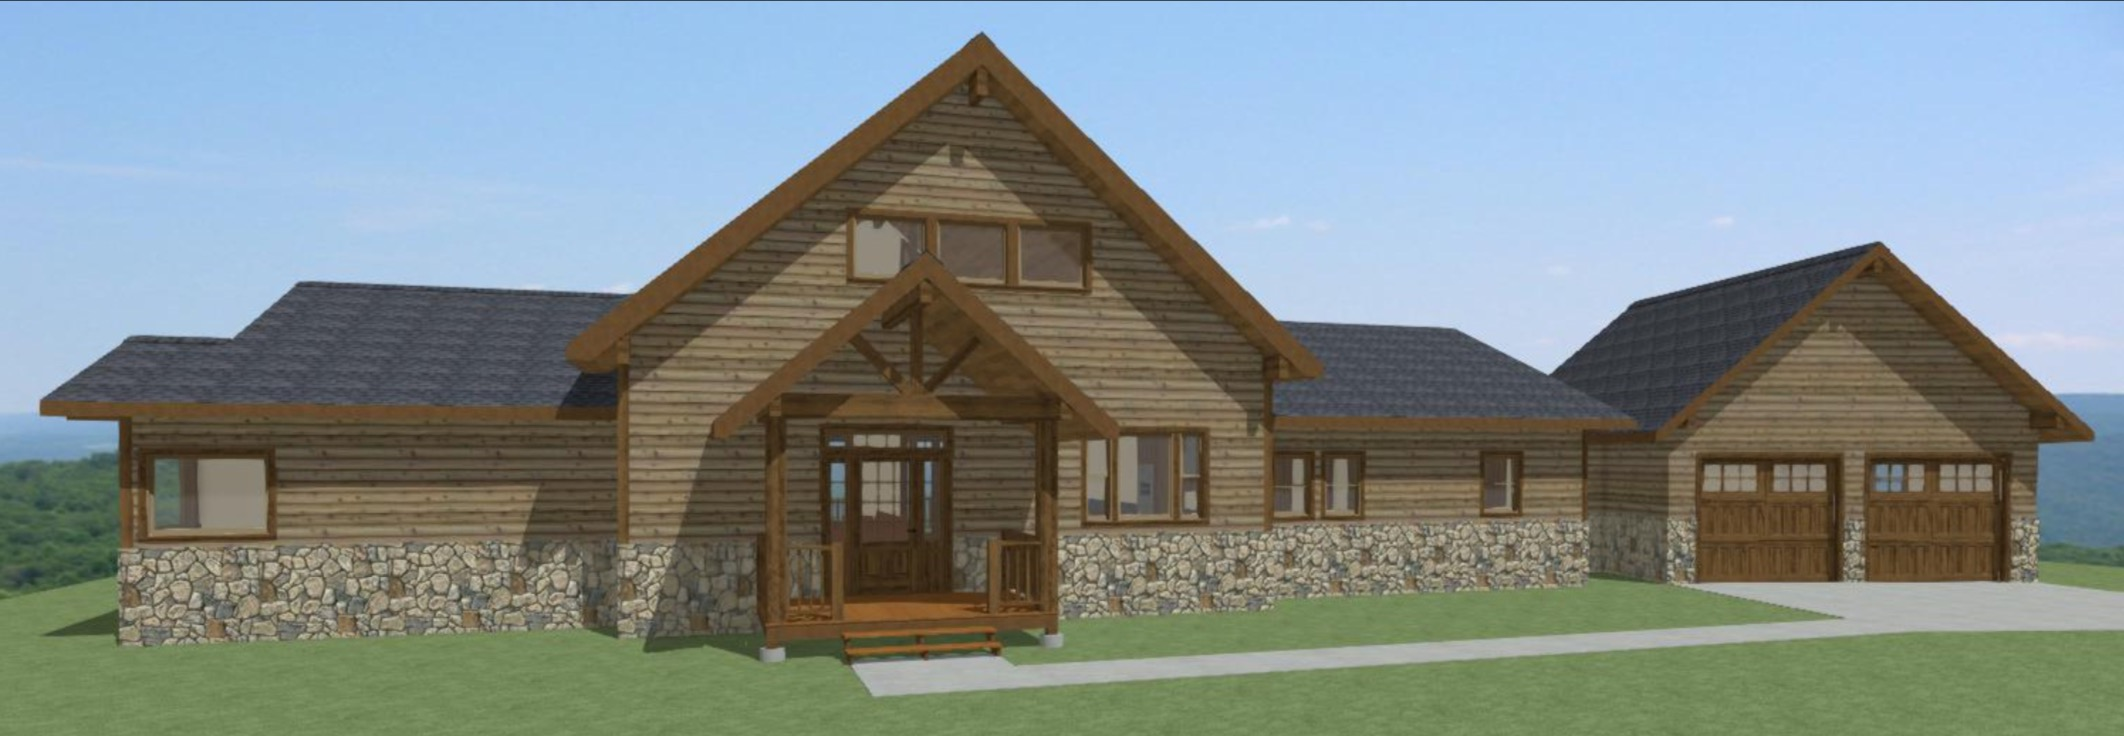 Main House Rendering by Montgomery Building Design LLC